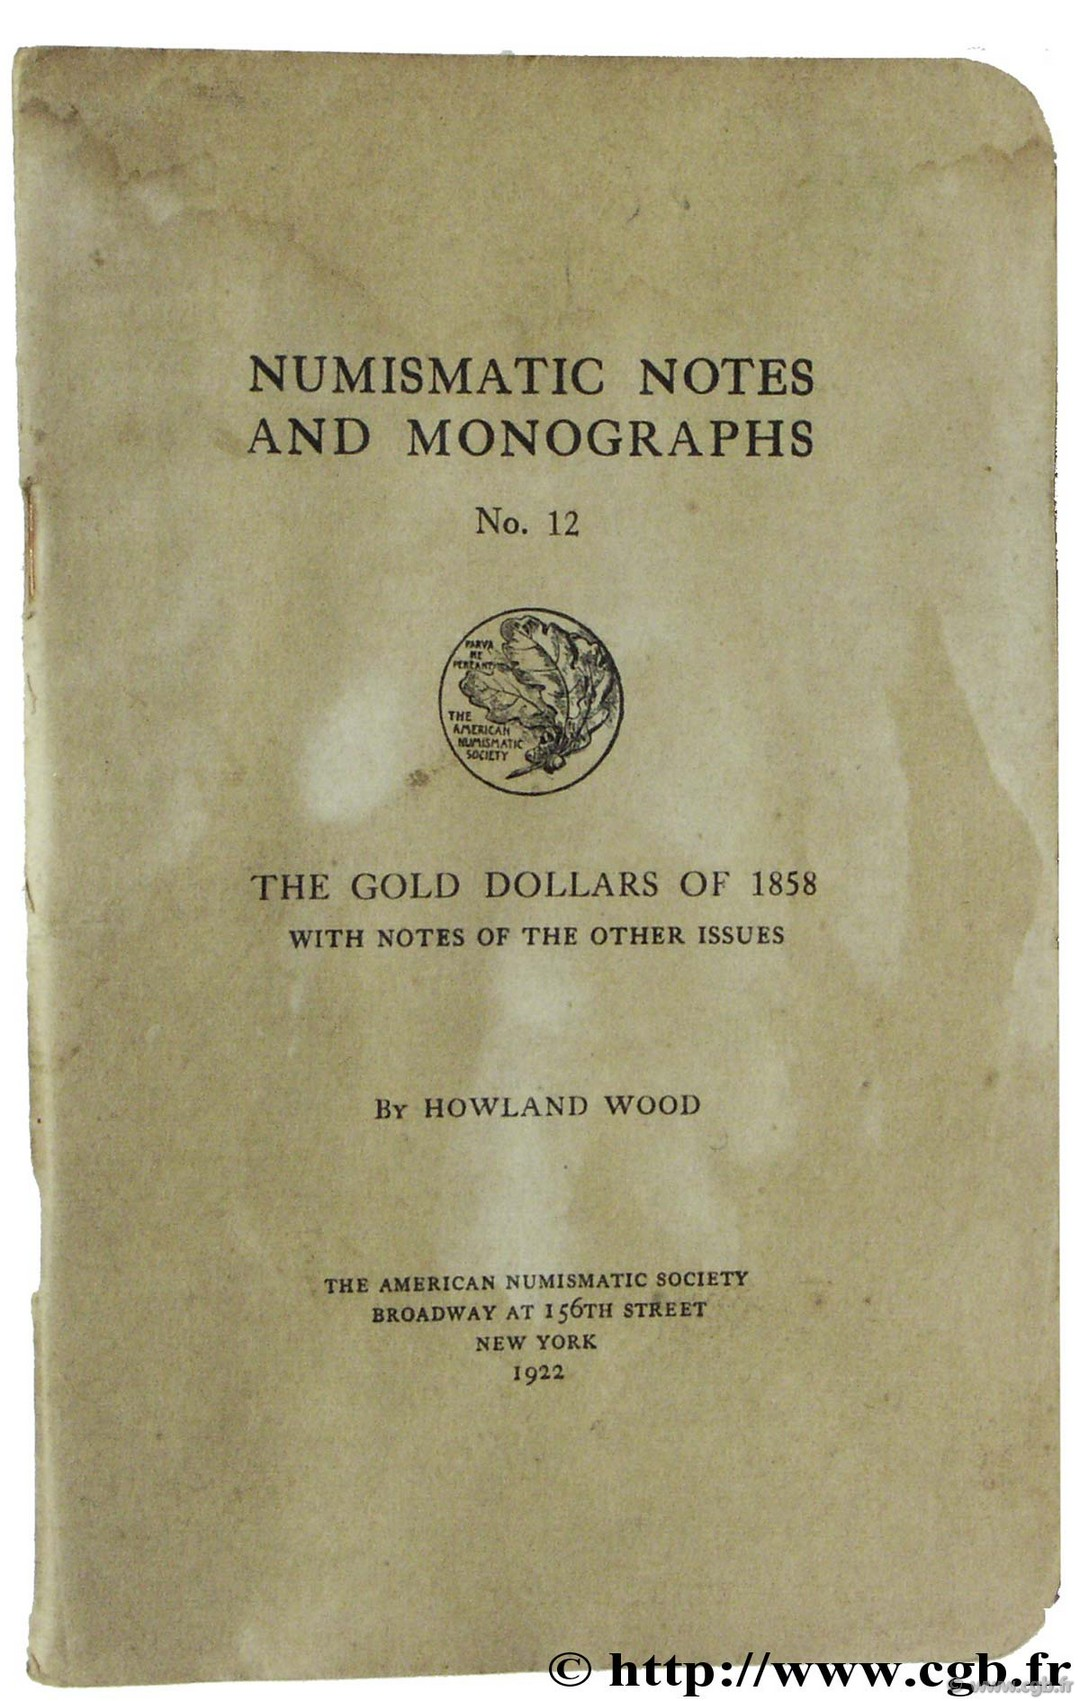 The Gold Dollars of 1858 with notes of the other issues, The American Numsimatic Society WOOD H.